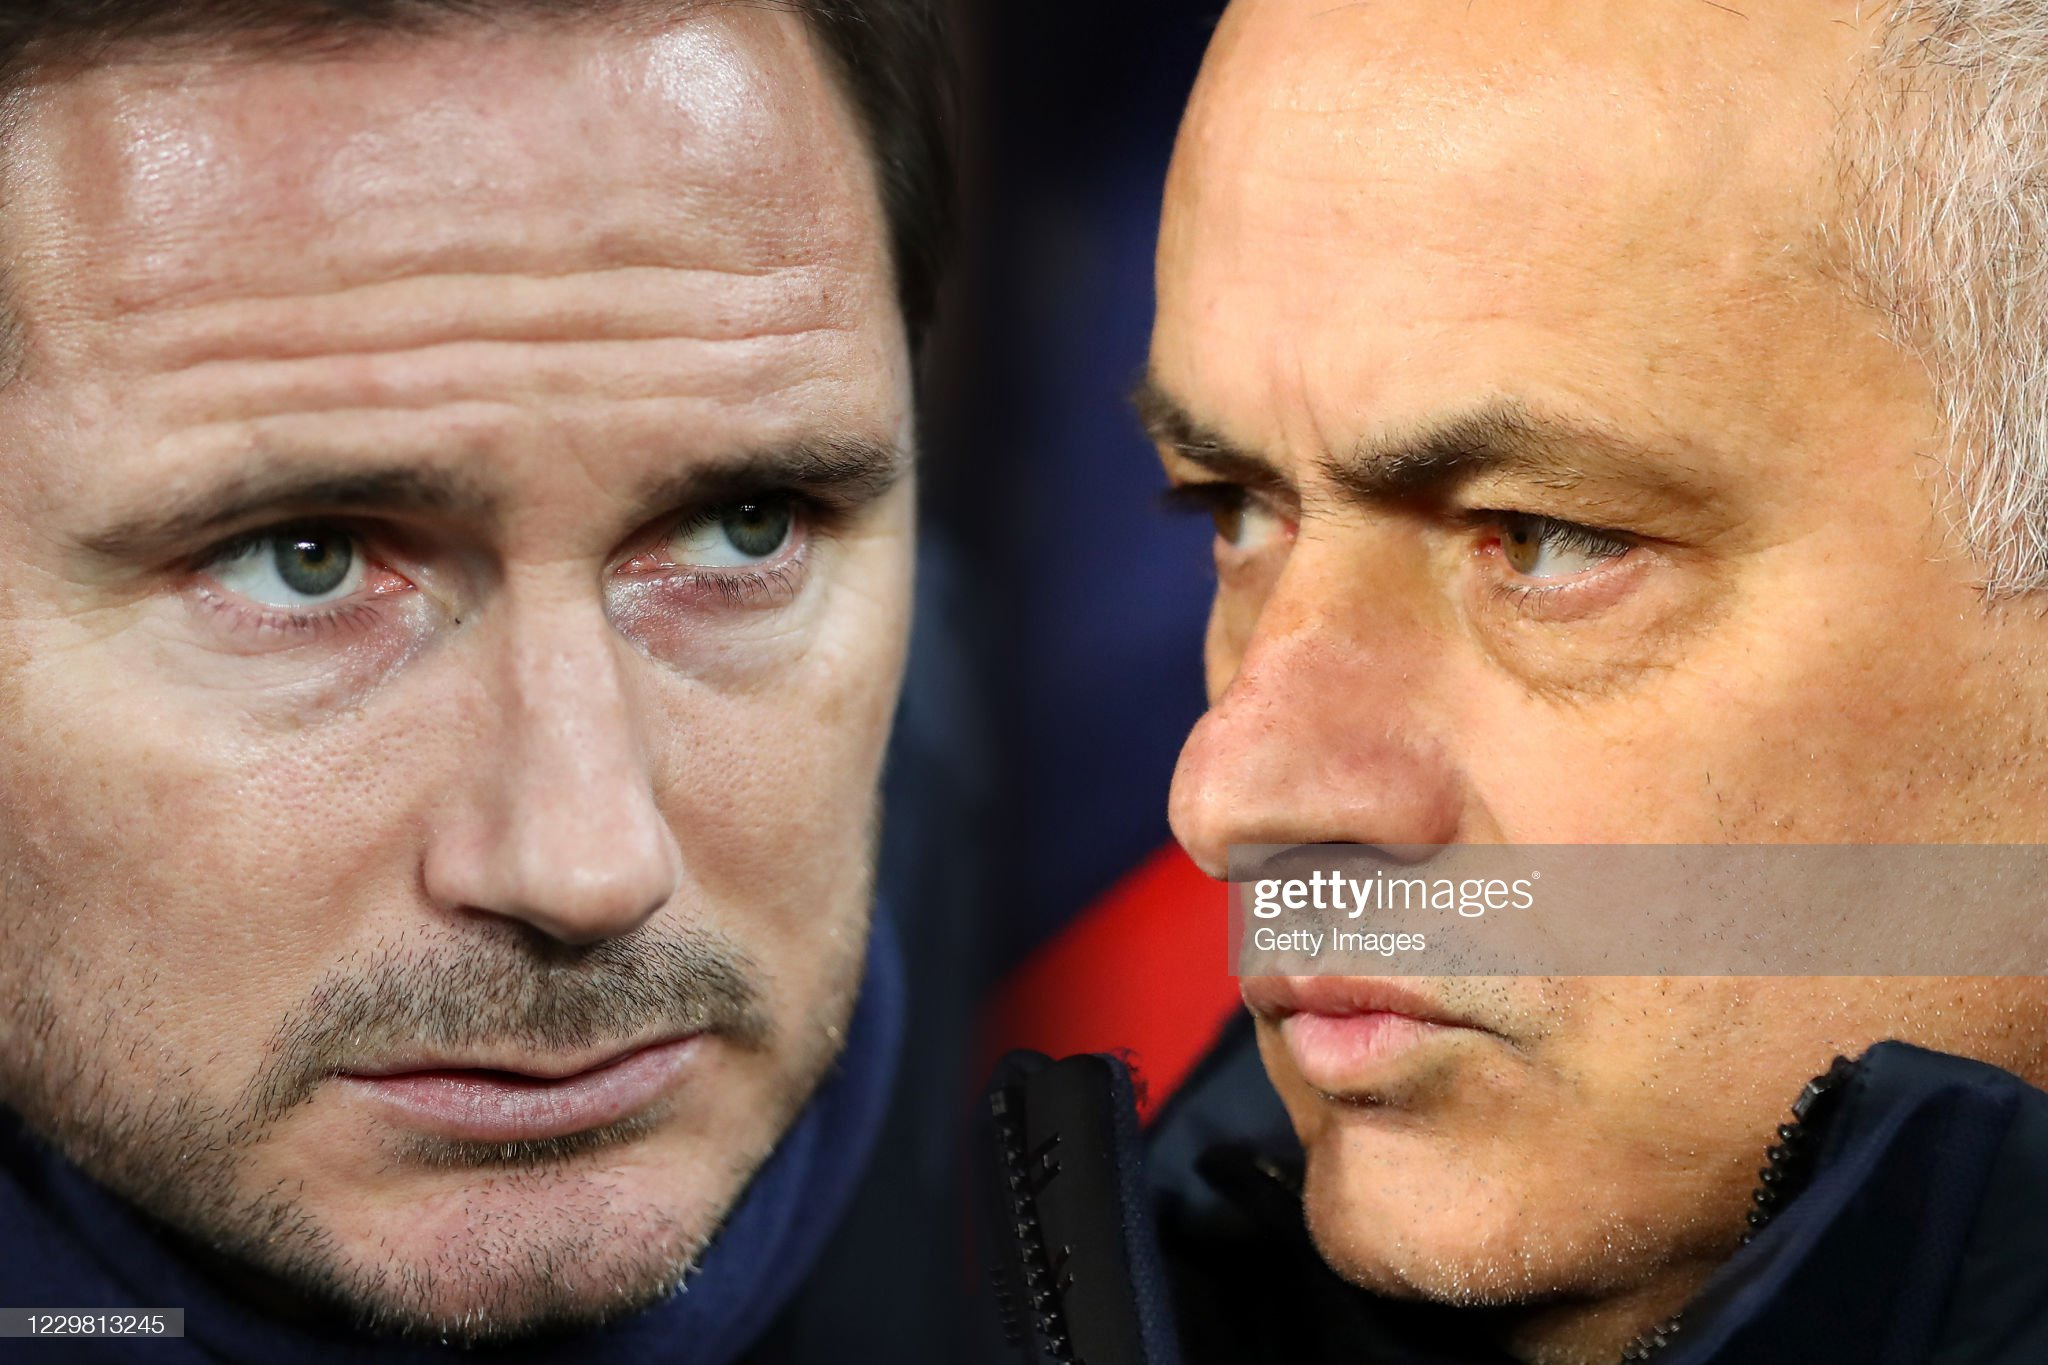 Chelsea vs Tottenham Preview, prediction and odds